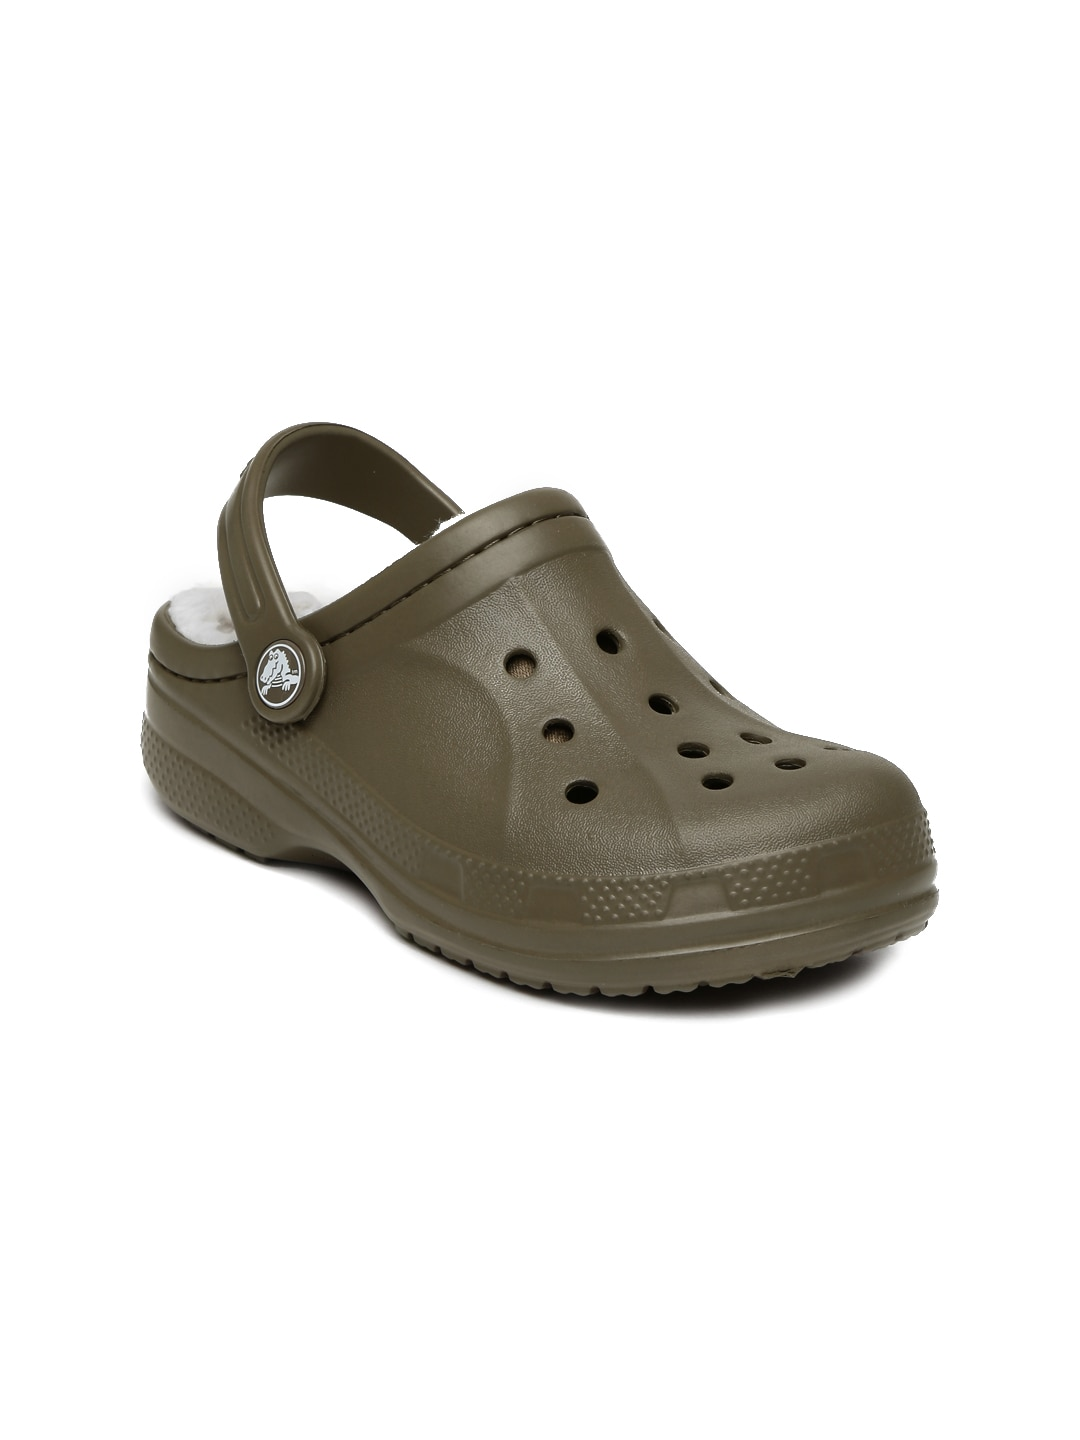 Crocs Kids Brown Ralen Lined Clogs image